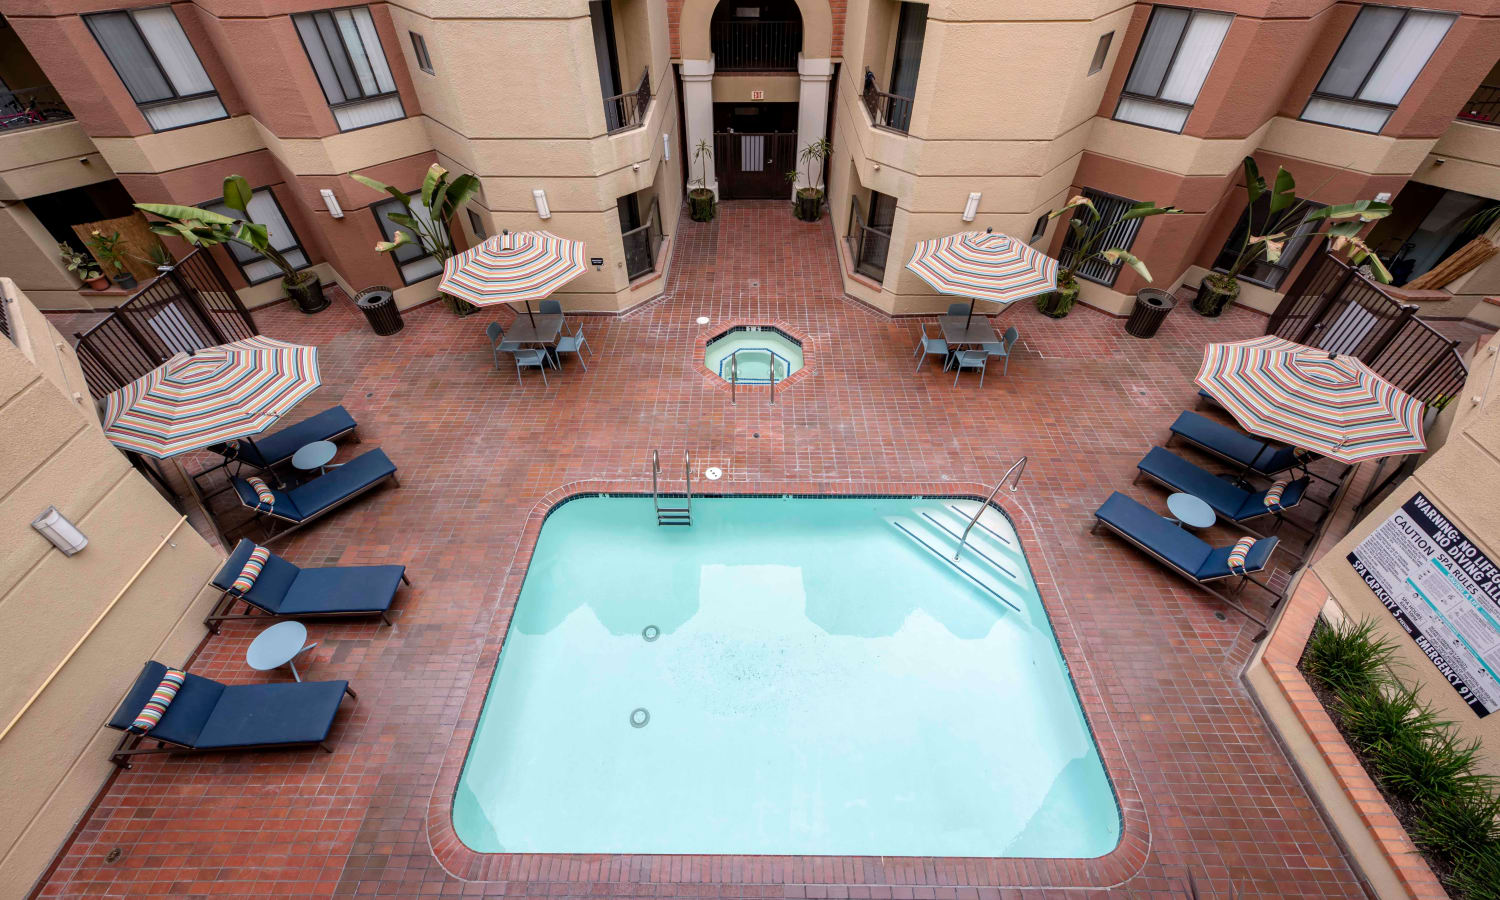 Sofi at 3rd offers a spacious swimming pool in Long Beach, California